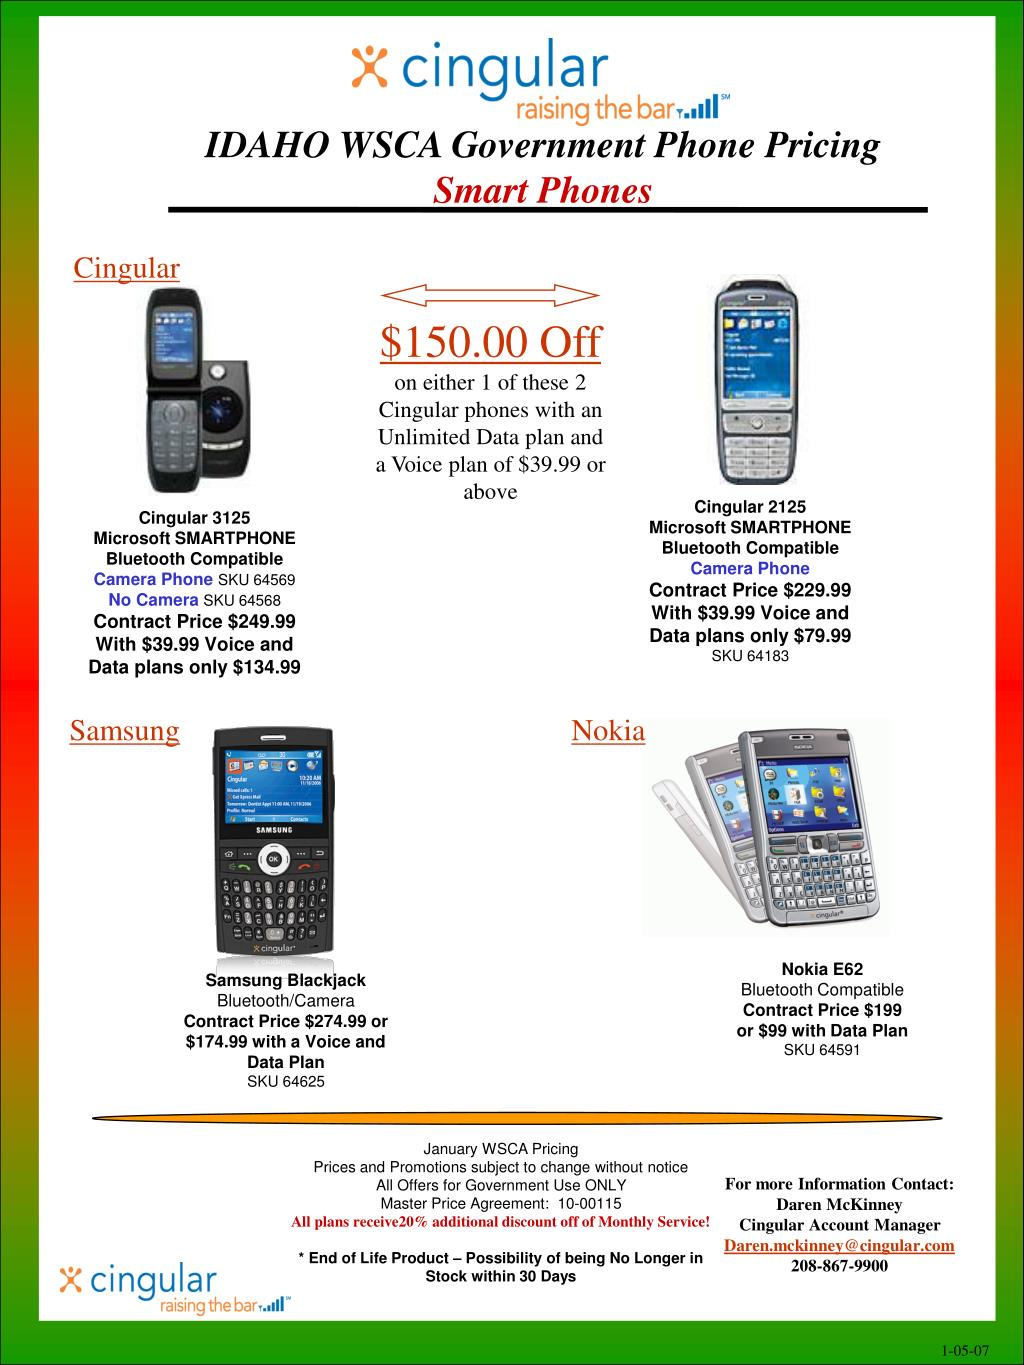 IDAHO WSCA Government Phone Pricing